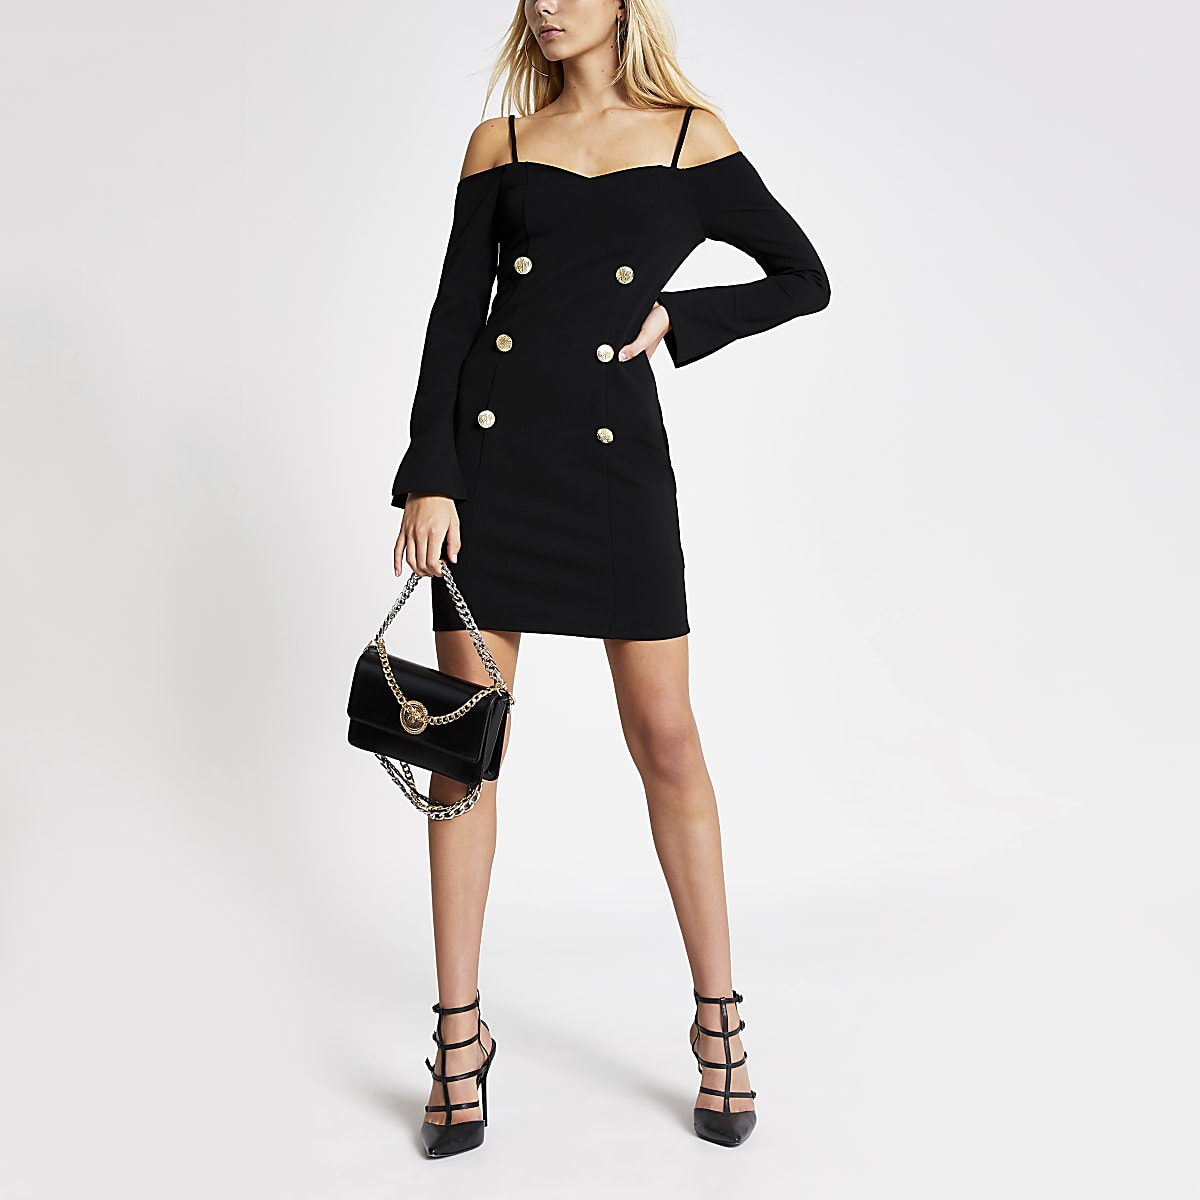 Black cold shoulder bodycon tux dress